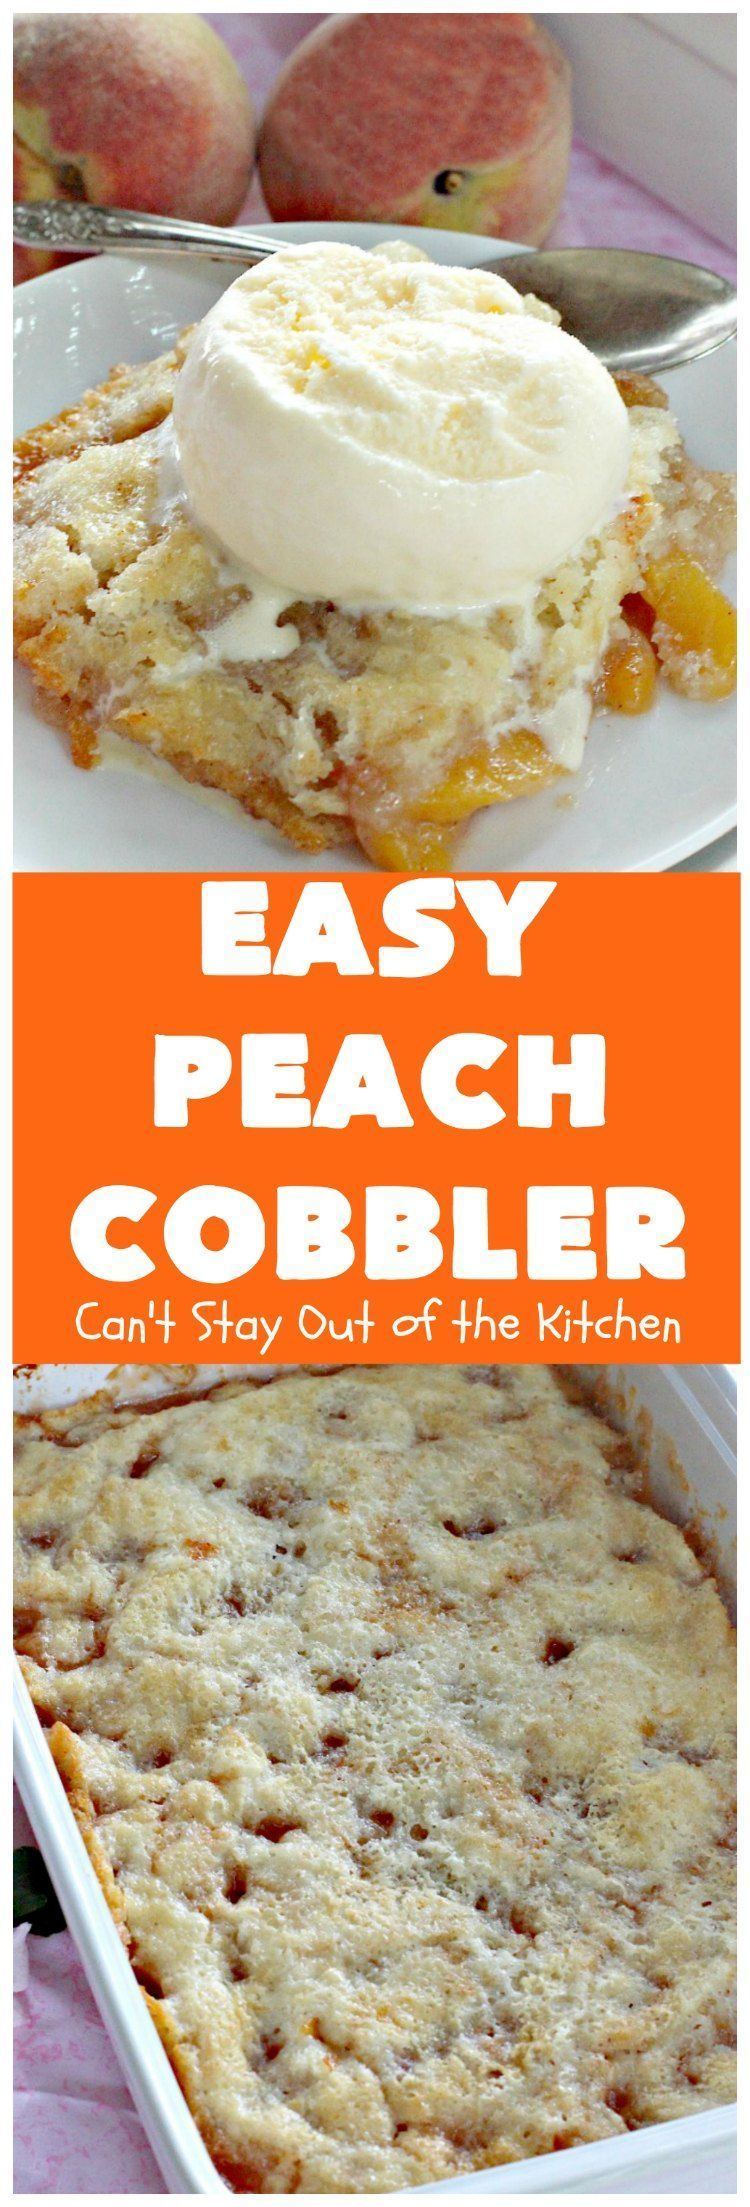 Easy Peach Cobbler Easy Peach Cobbler #peachcobblercheesecake #peachcobbler #fantastic #dessert. #kitchen #peaches #perfect #cobbler #cobbler #recipe #summer #peach #thats #peach #stay #cantEasy Peach Cobbler Easy Peach Cobbler | Can't Stay Out of the Kitchen | fantastic recipe that's perfect for aEasy Peach Cobbler | Can't Stay Out of the Kitchen | fantastic recipe that's perfect for a #peachcobblercheesecake